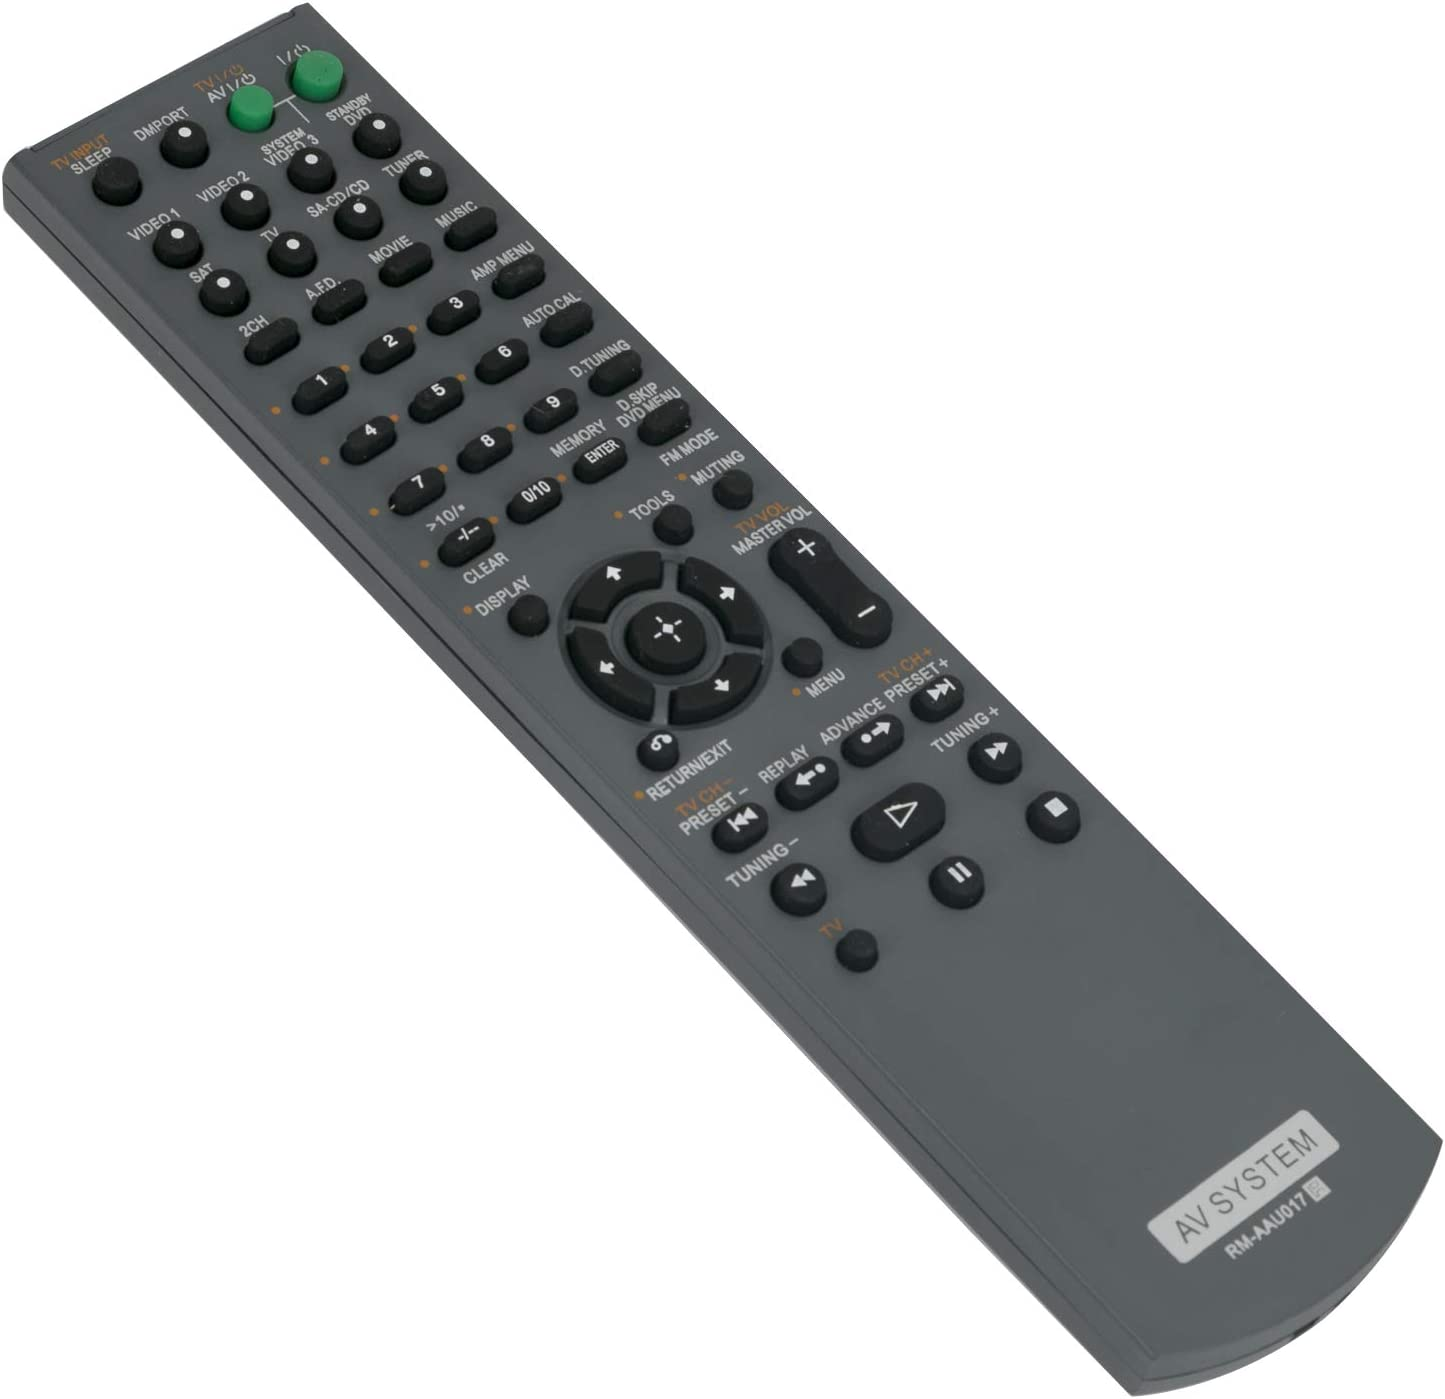 New RM-AAU017 Replace Remote Control RMAAU017 fit for Sony AV Receiver Home Theater System HT-SF2000 HT-SS2000 STR-KS2000 HT-SF1200 HT-SS1200 STR-KS1200 SS-MSP2200 SS-CNP2200 SS-SRP2200 SS-WP2200